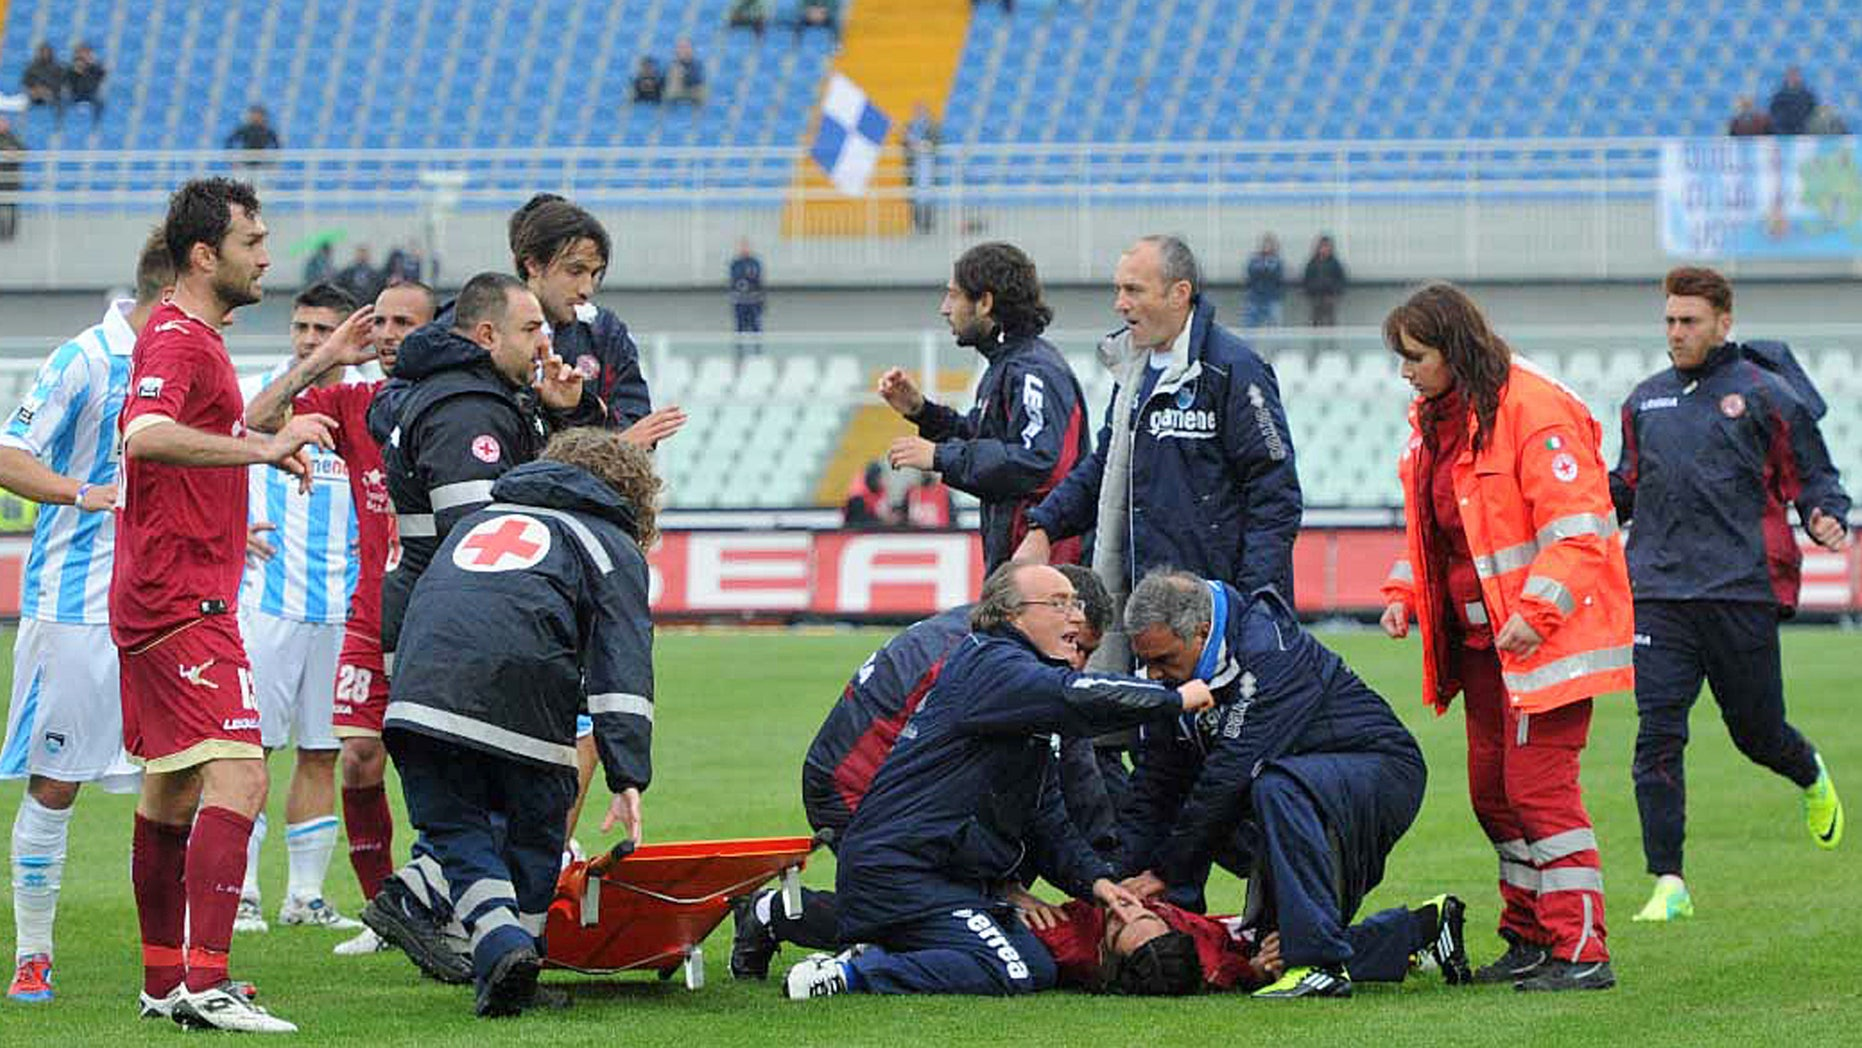 April 14, 2012: Medics assists Livorno's Piermario Morosini laying on the turf of the Pescara's Adriatico stadium, central Italy, Saturday, after he collapsed during a Serie B soccer match between Pescara and Livorno.